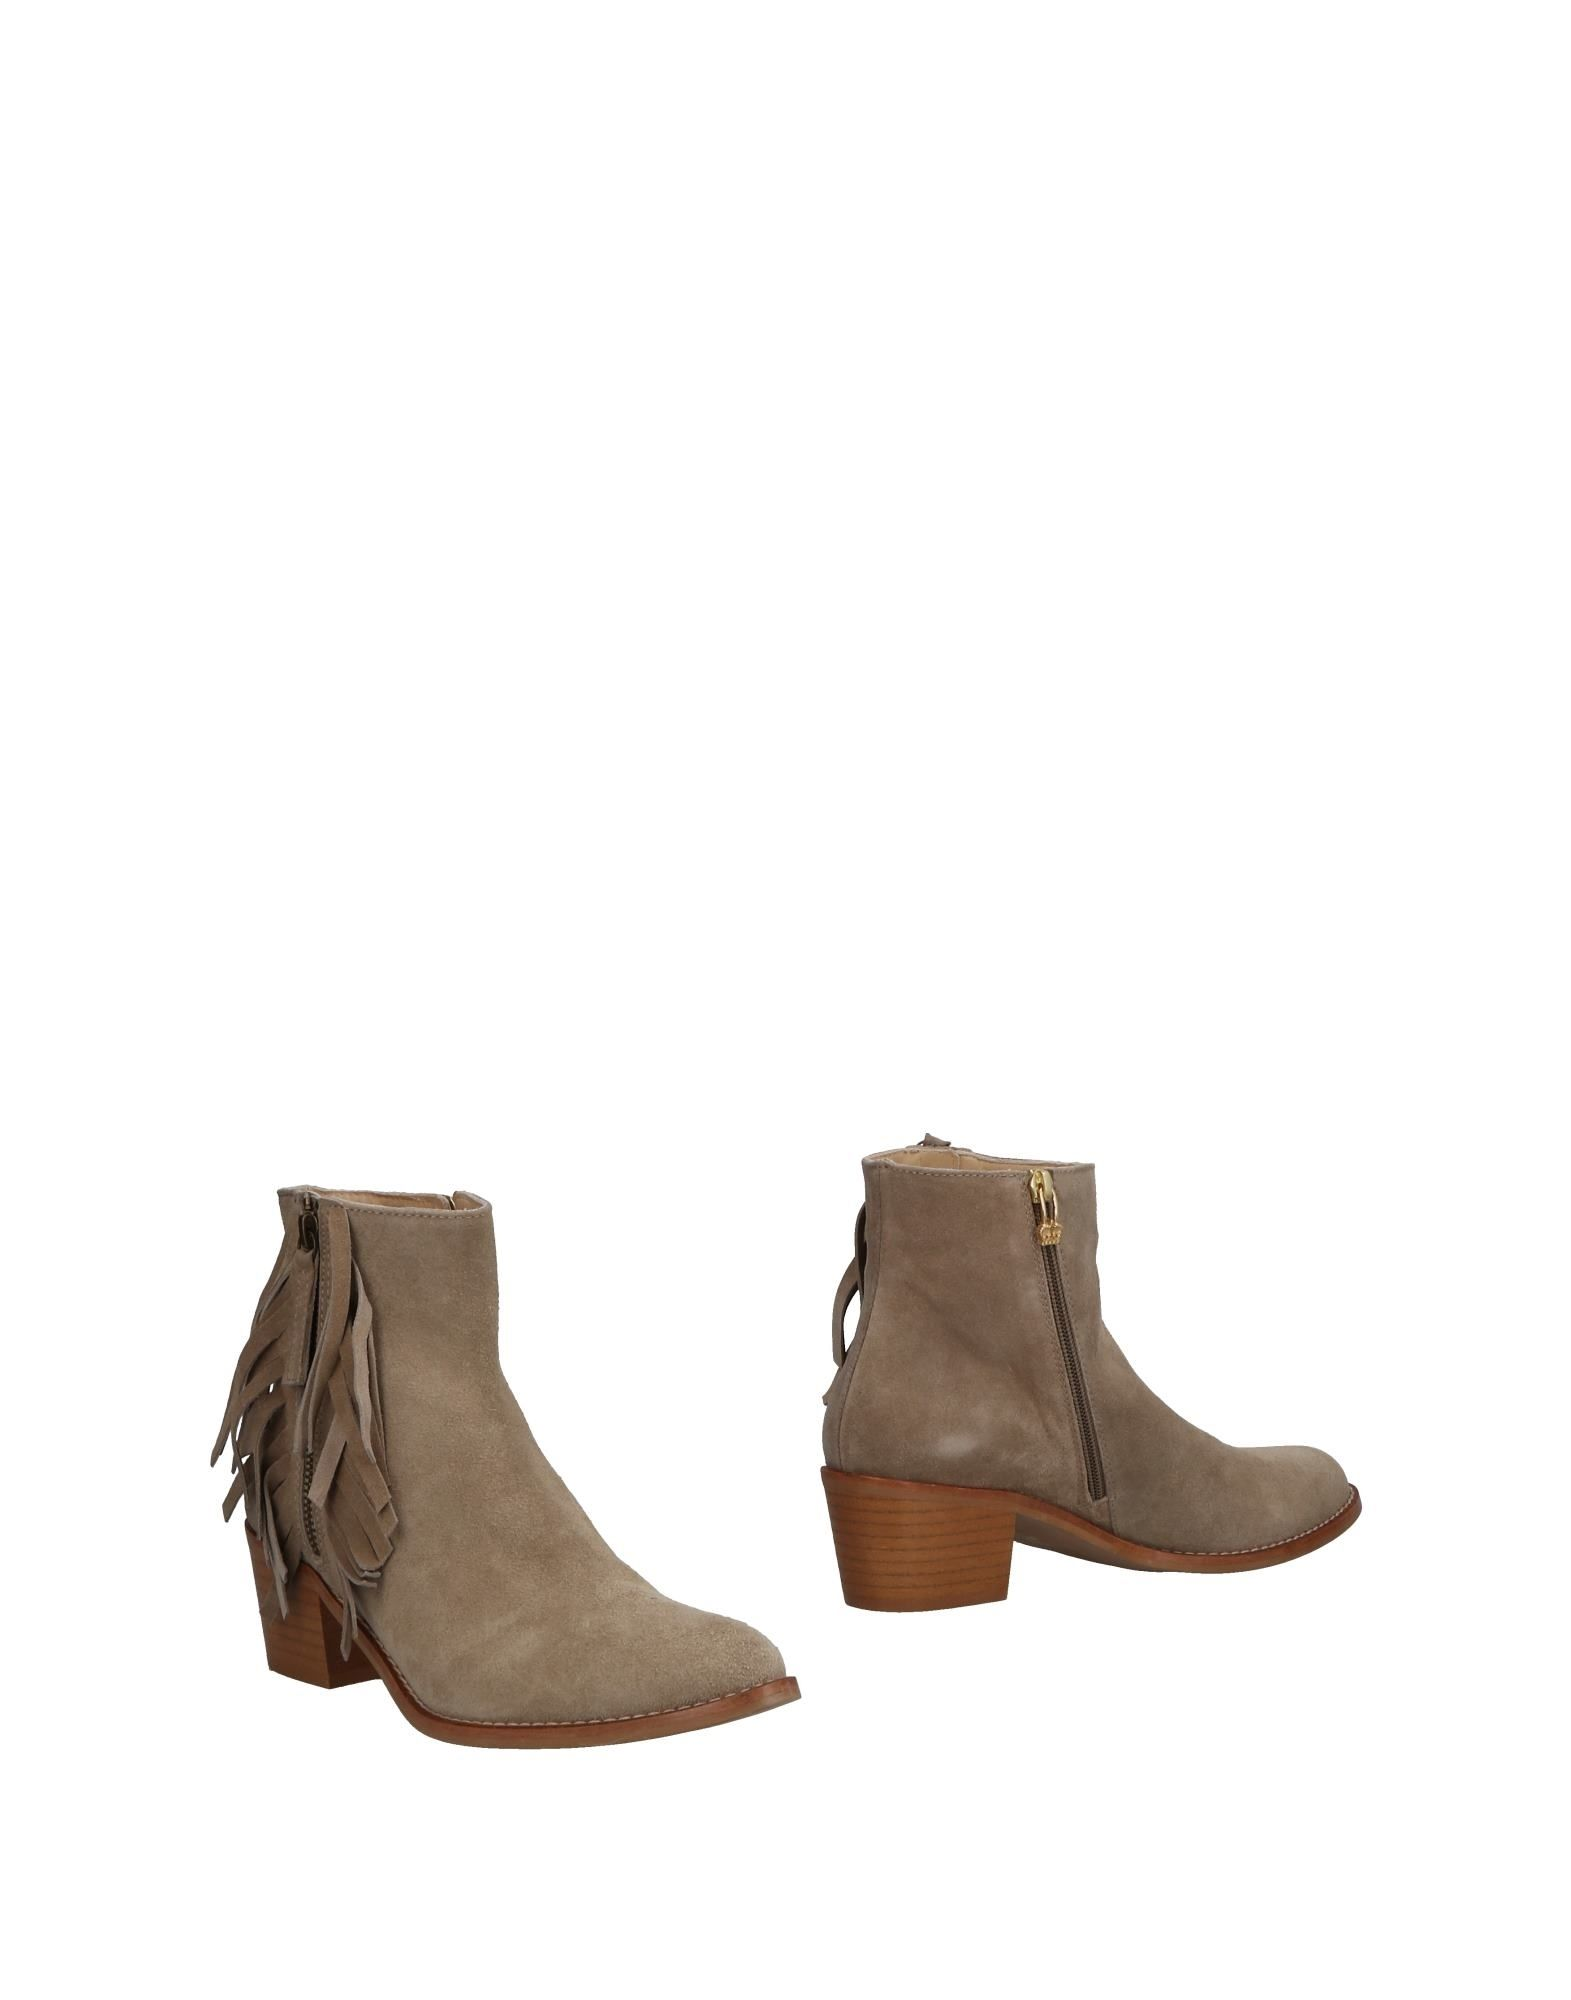 AUGUSTE Ankle Boot in Light Grey